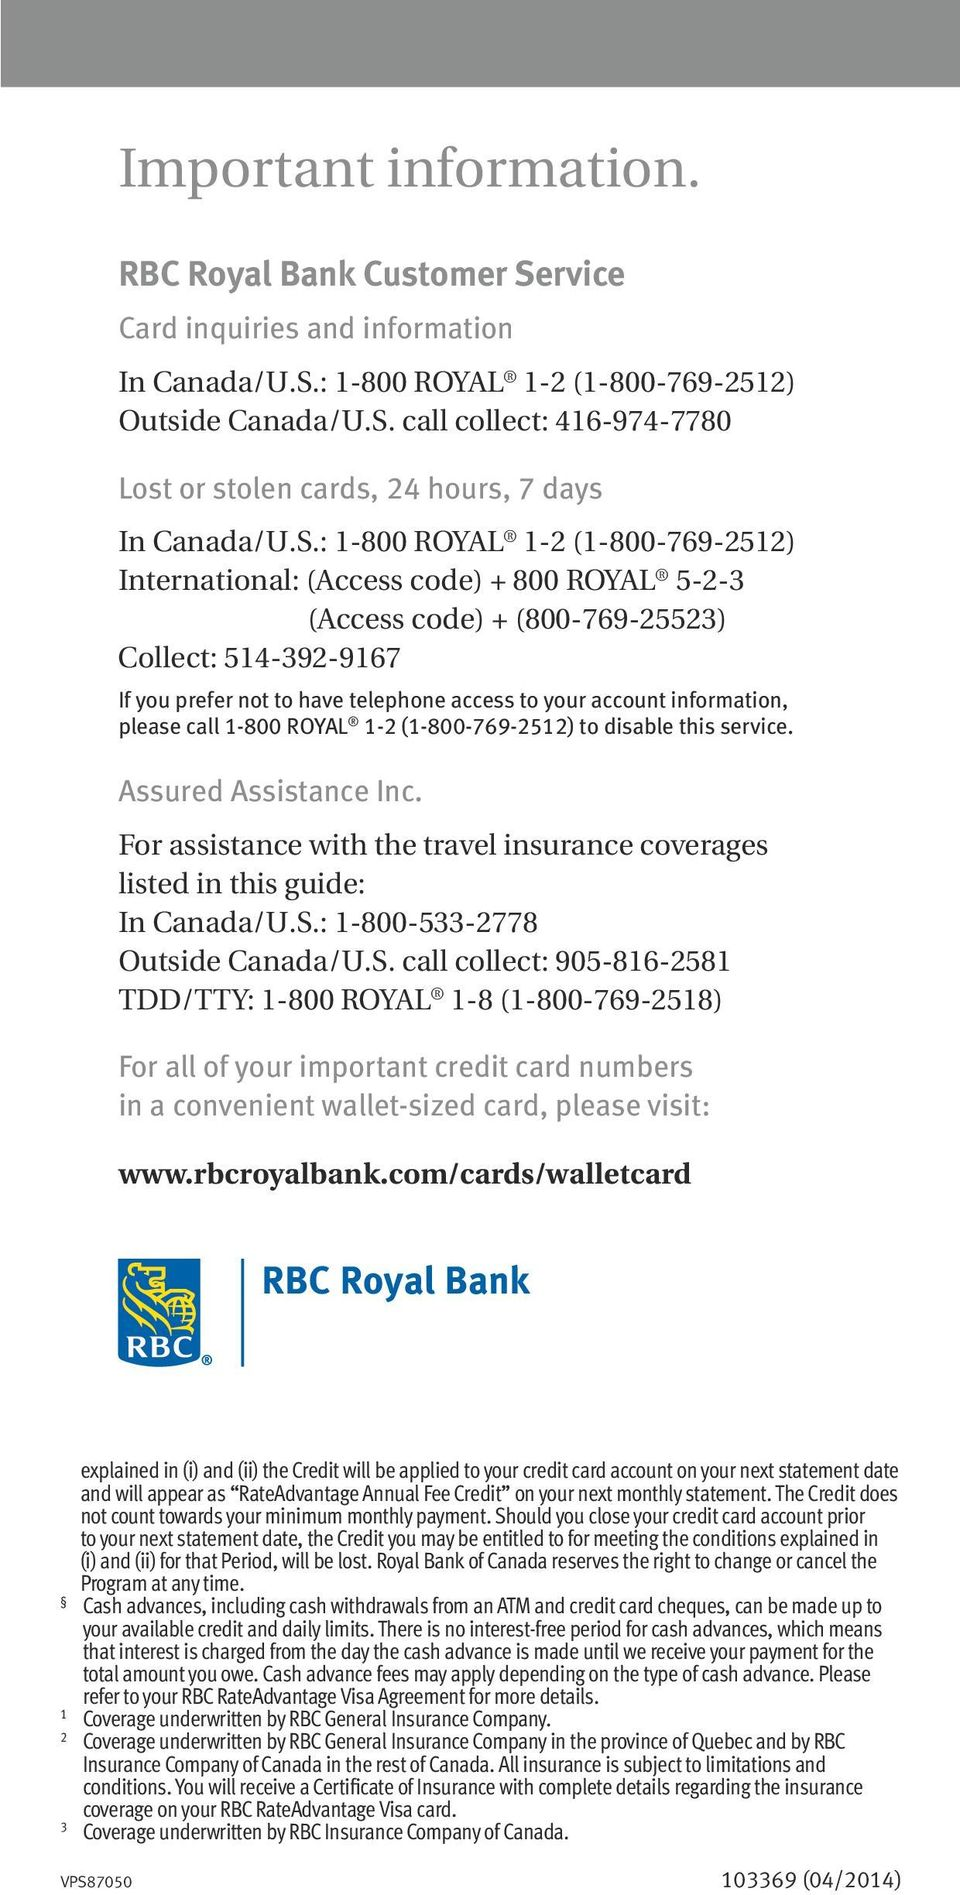 information, please call 1-800 ROYAL 1-2 (1-800-769-2512) to disable this service. Assured Assistance Inc. For assistance with the travel insurance coverages listed in this guide: In Canada/U.S.